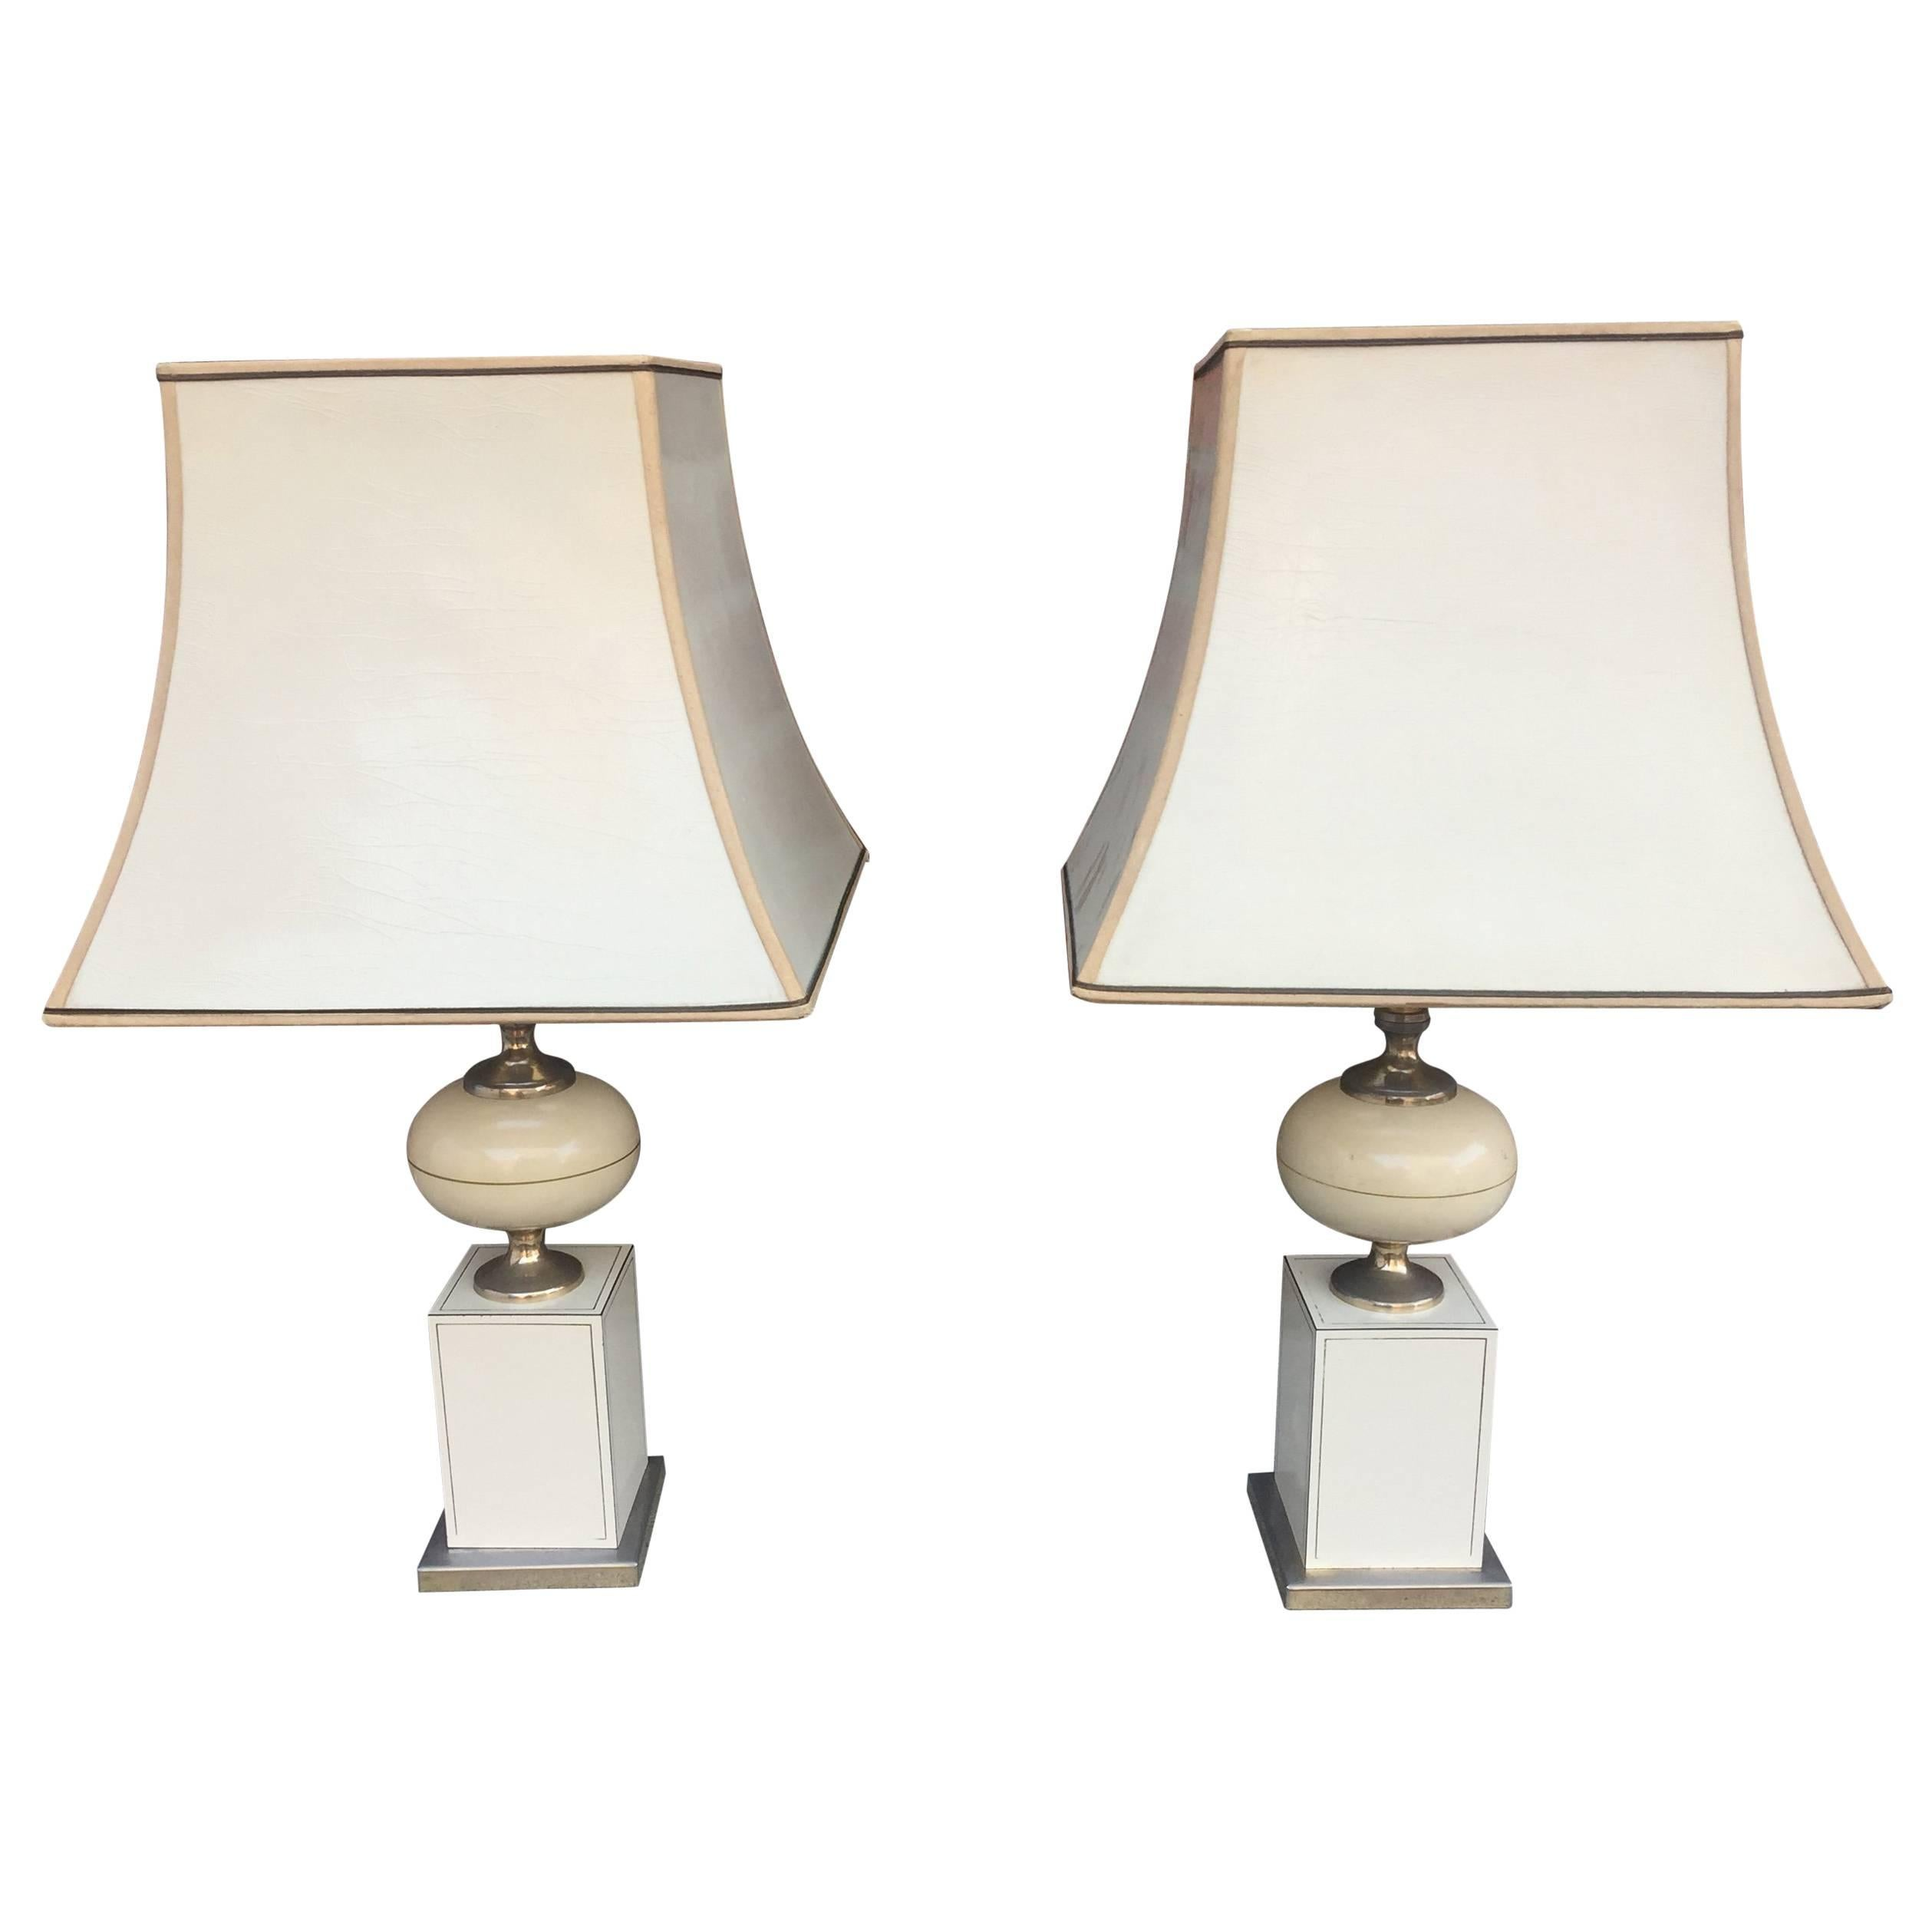 Pair of Table Lamps, circa 1970